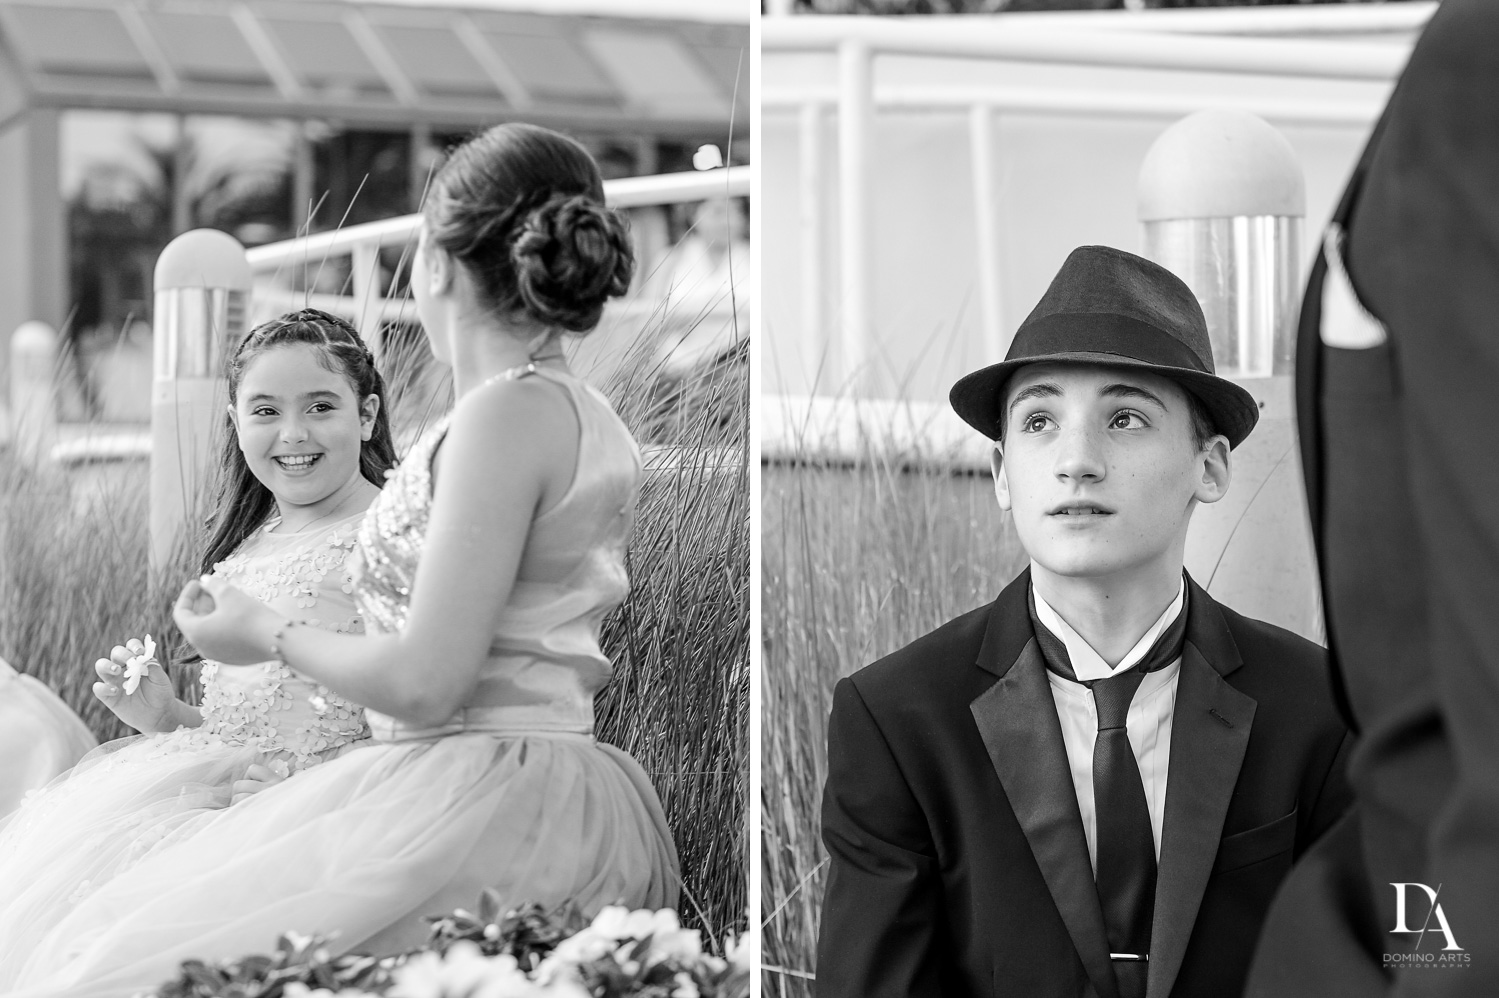 Black and white kids Wedding Photography in South Florida at Fort Lauderdale Marriott Harbor Beach Resort & Spa by Domino Arts Photography